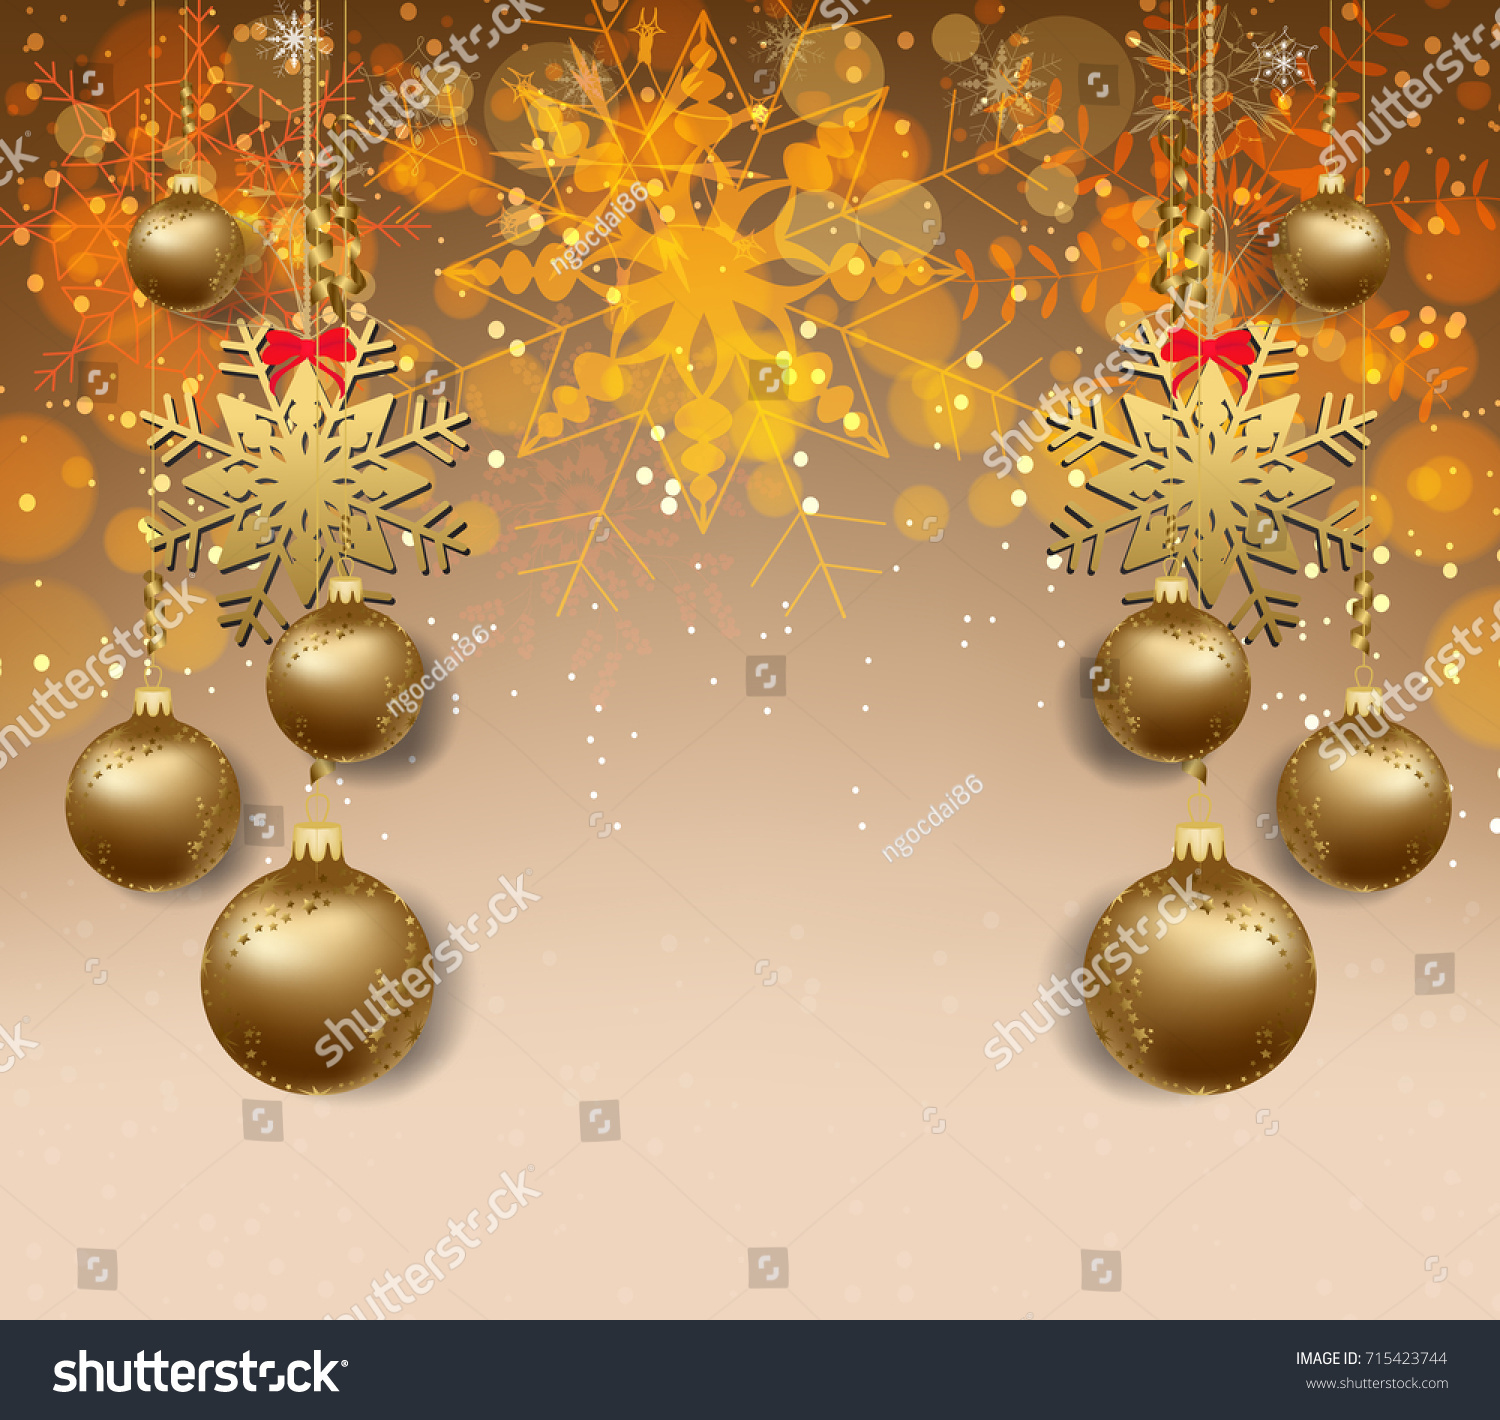 merry christmas and happy new year 2018 wallpaper gold balls